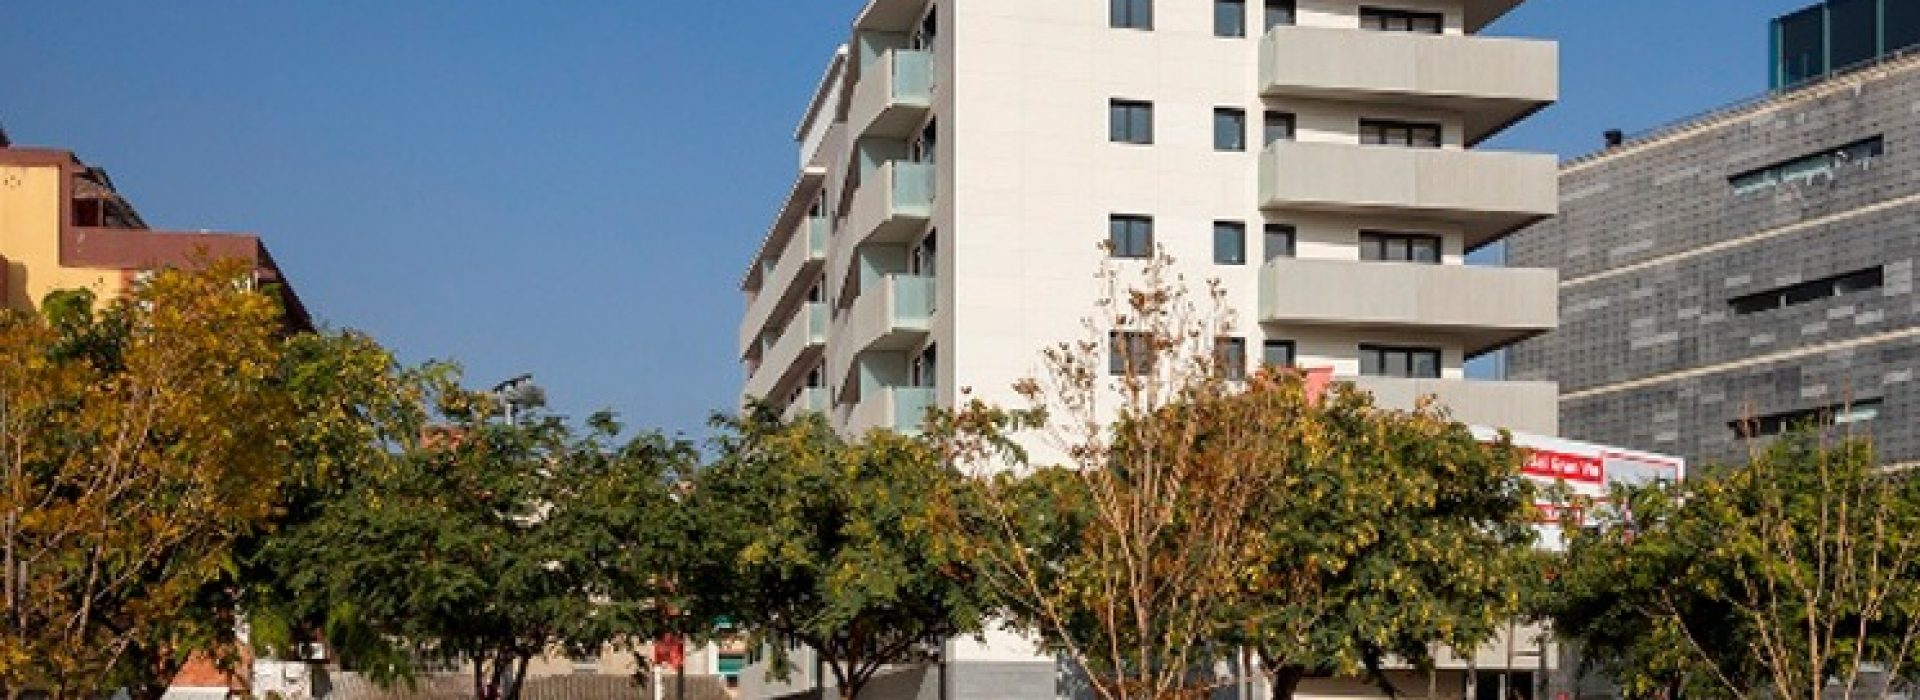 residencial-can-trinxet01